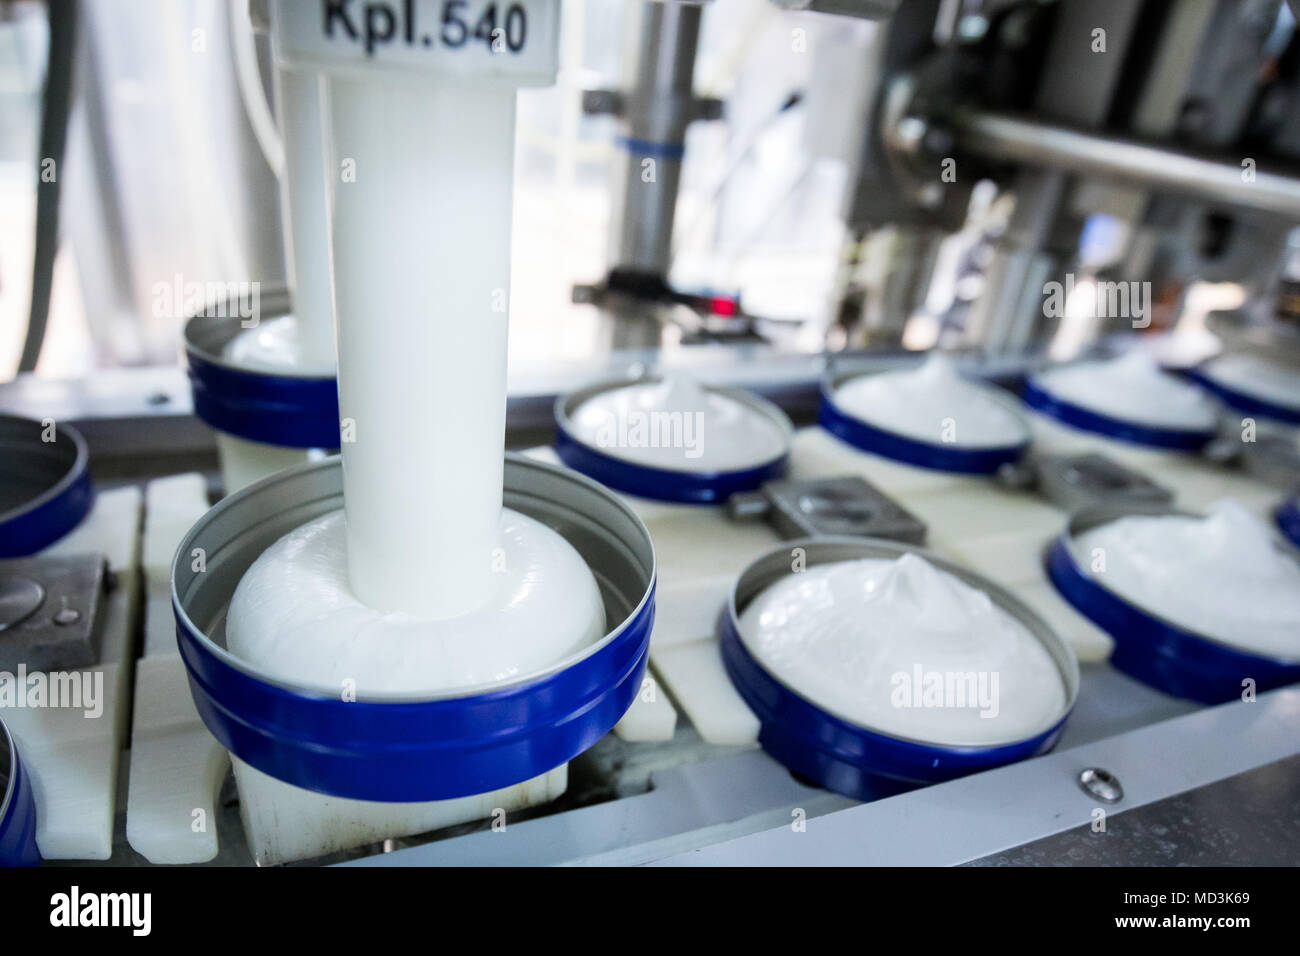 18 April 2018, Germany, Hamburg: Nivea-Creme is being filled at the production plant of the German personal-care company Beiersdorf. Photo: Christian Charisius/dpa - Stock Image